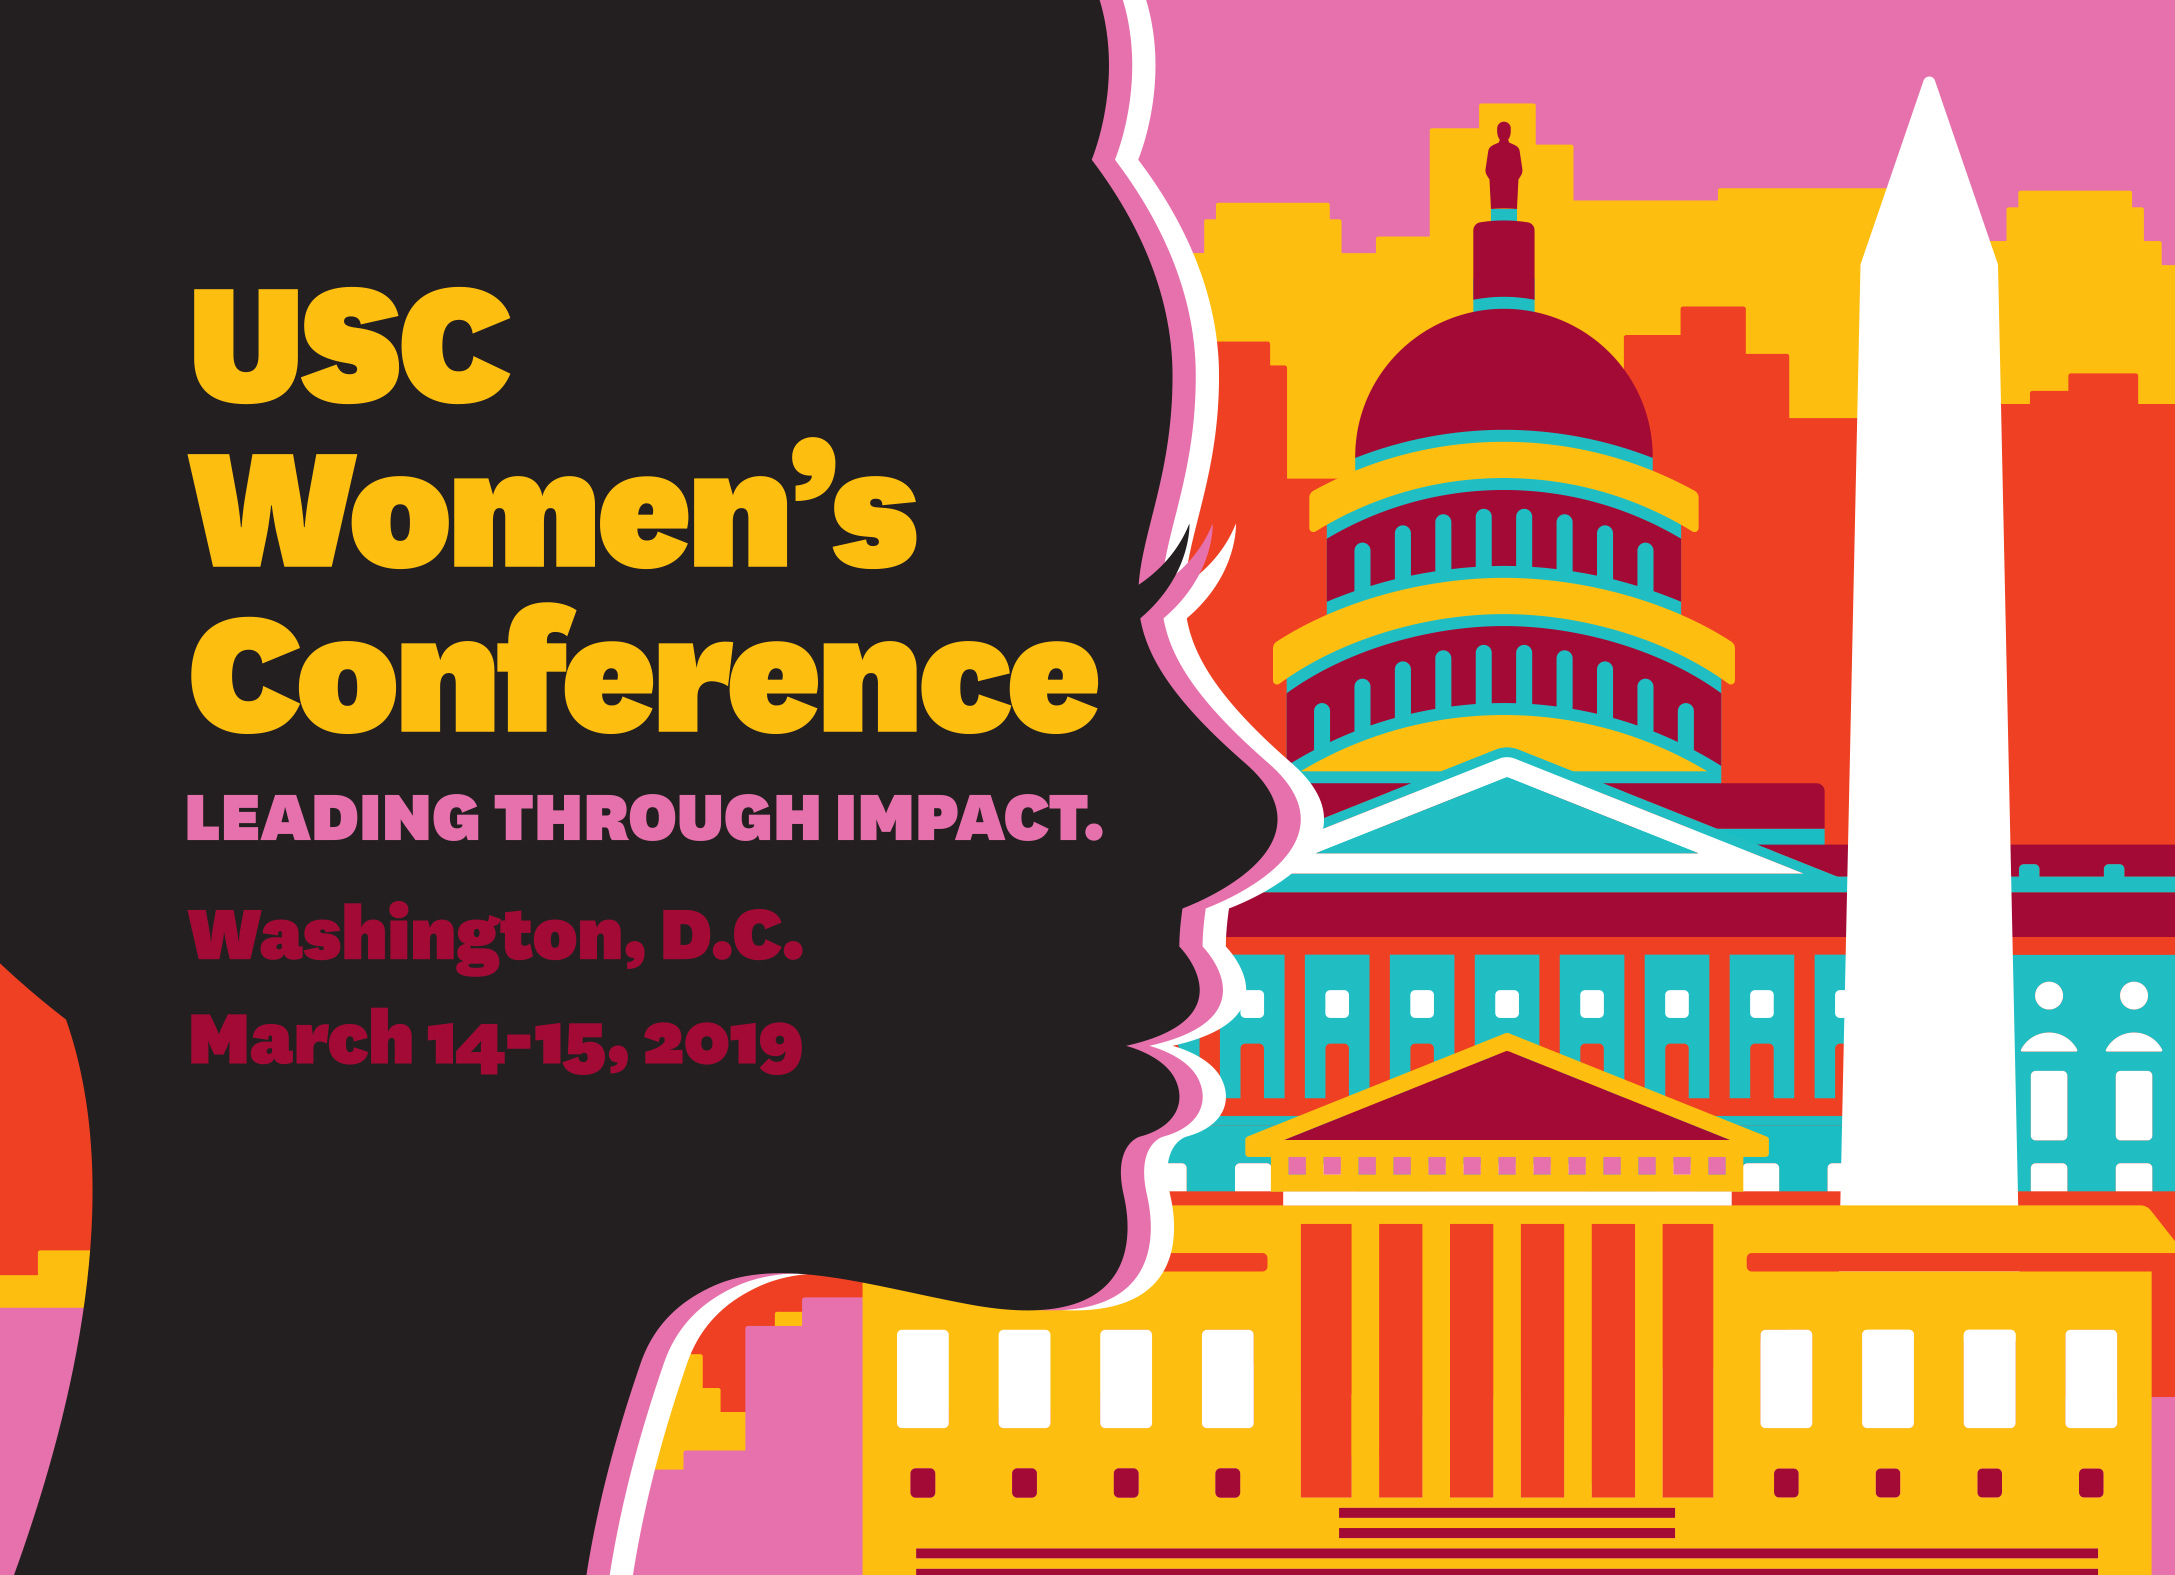 11th Annual USC Women's Conference